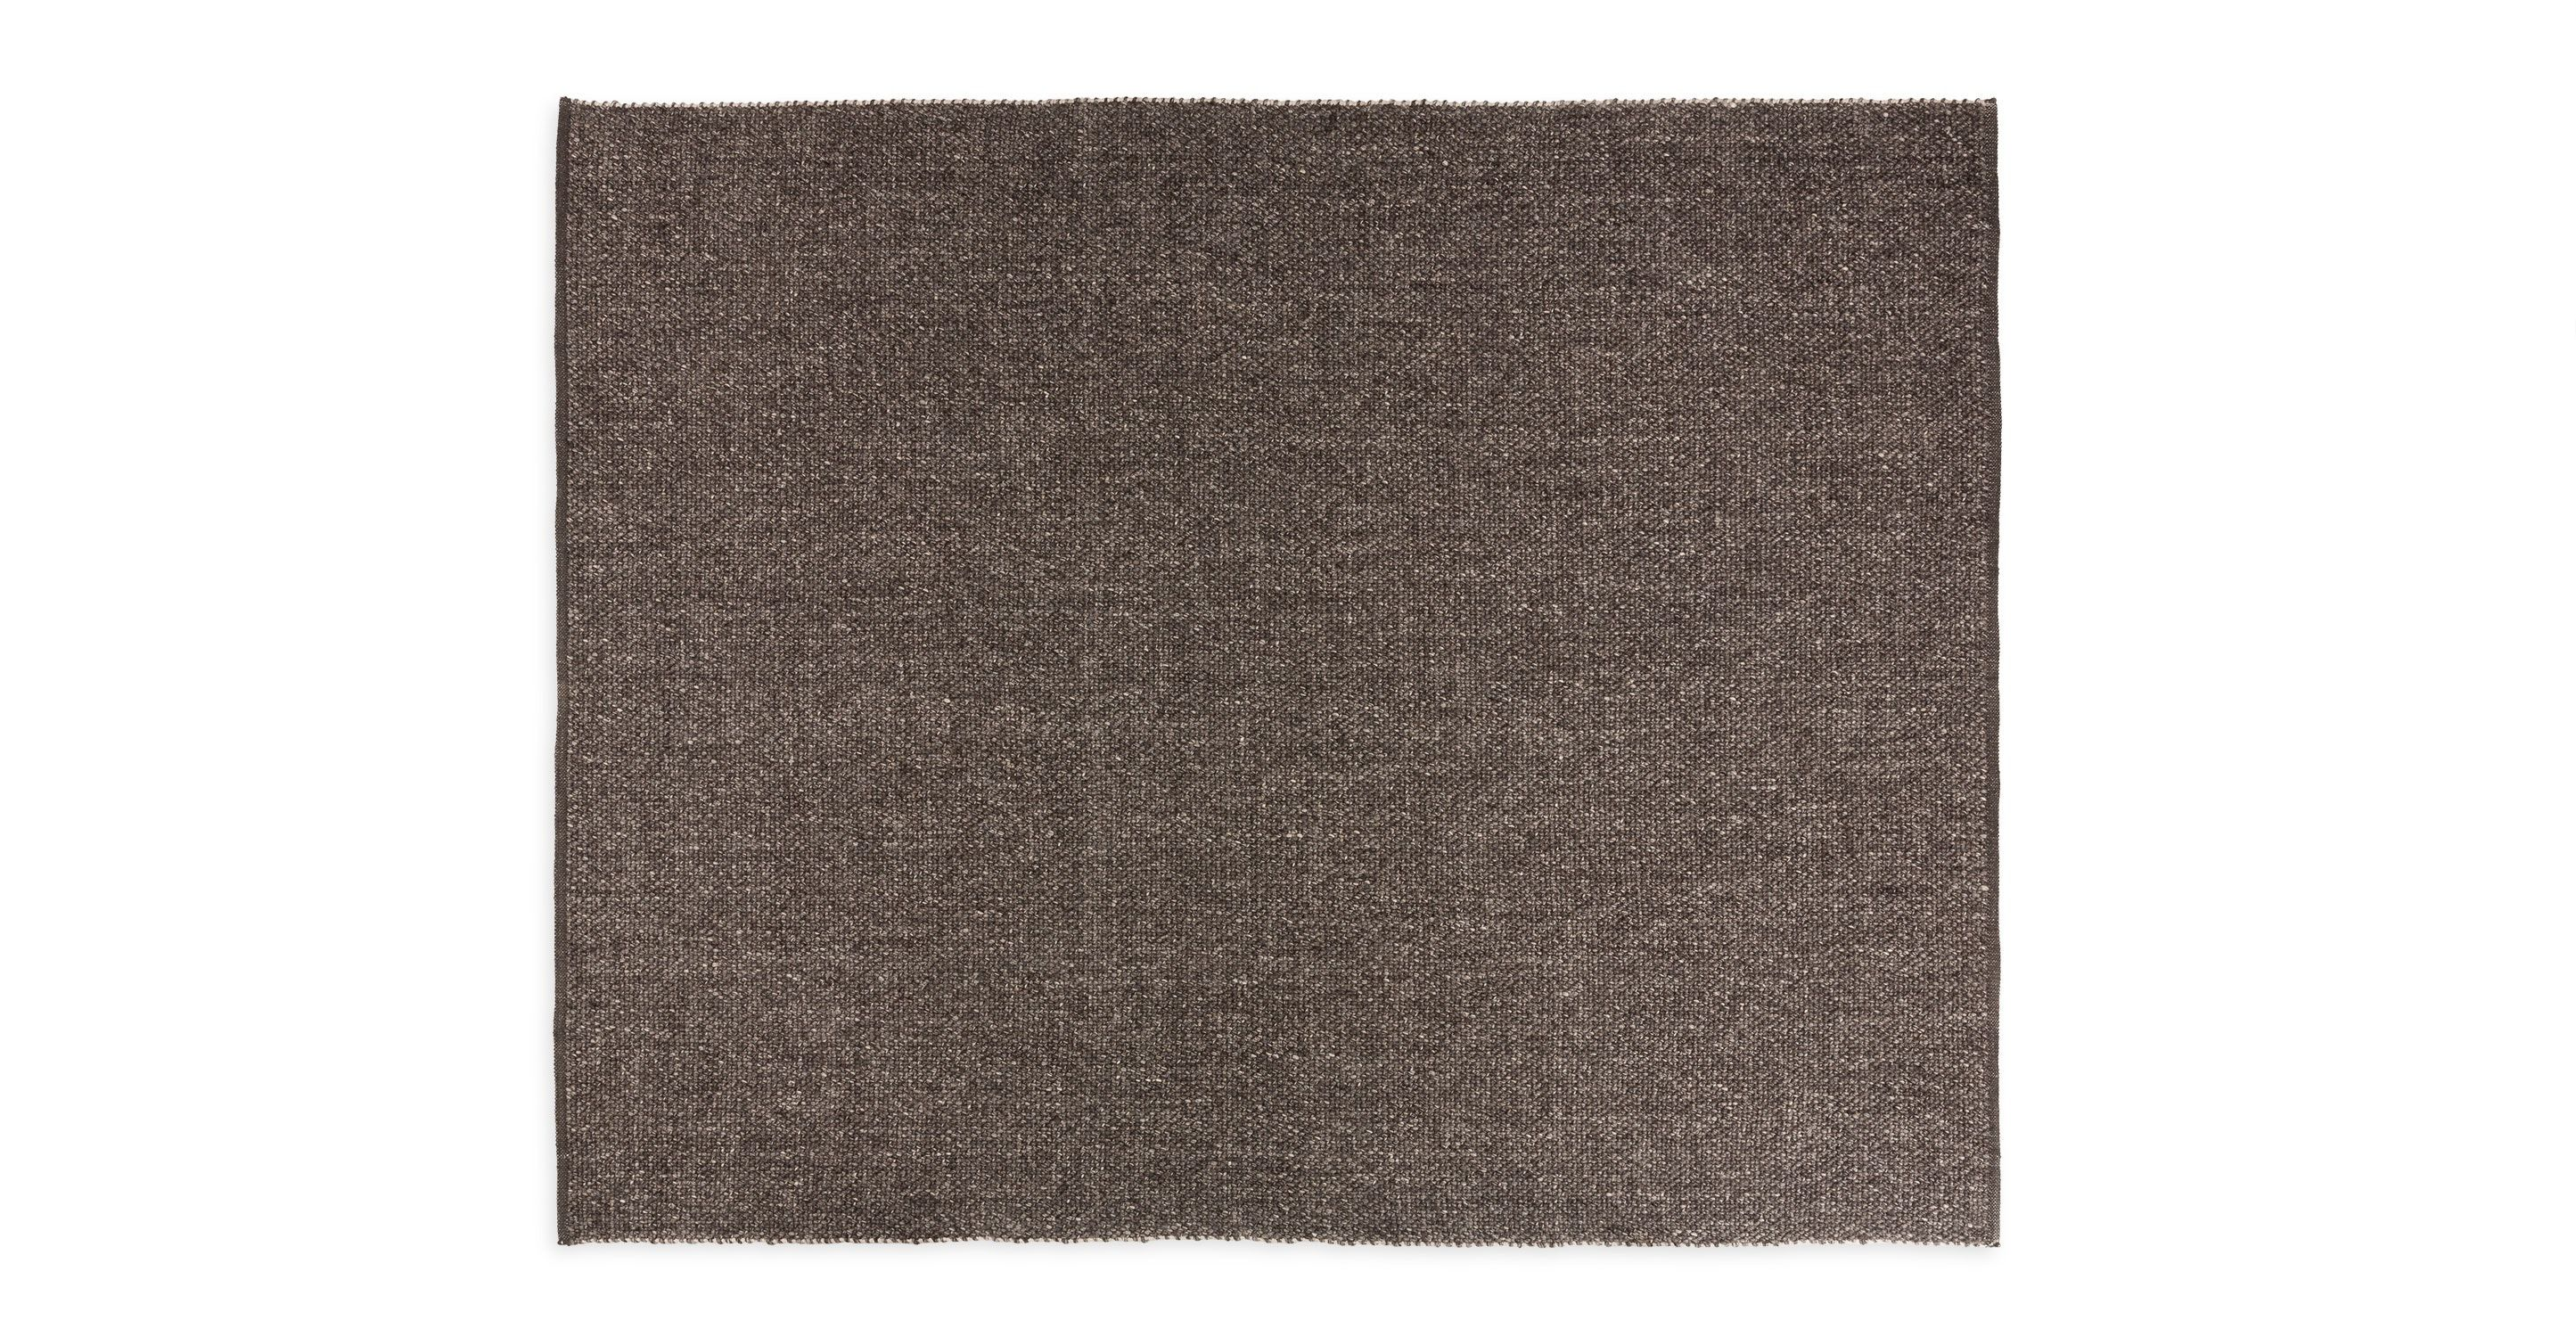 texa raven charcoal rug 8 x 10 inspiration for our home rugs rh pinterest com